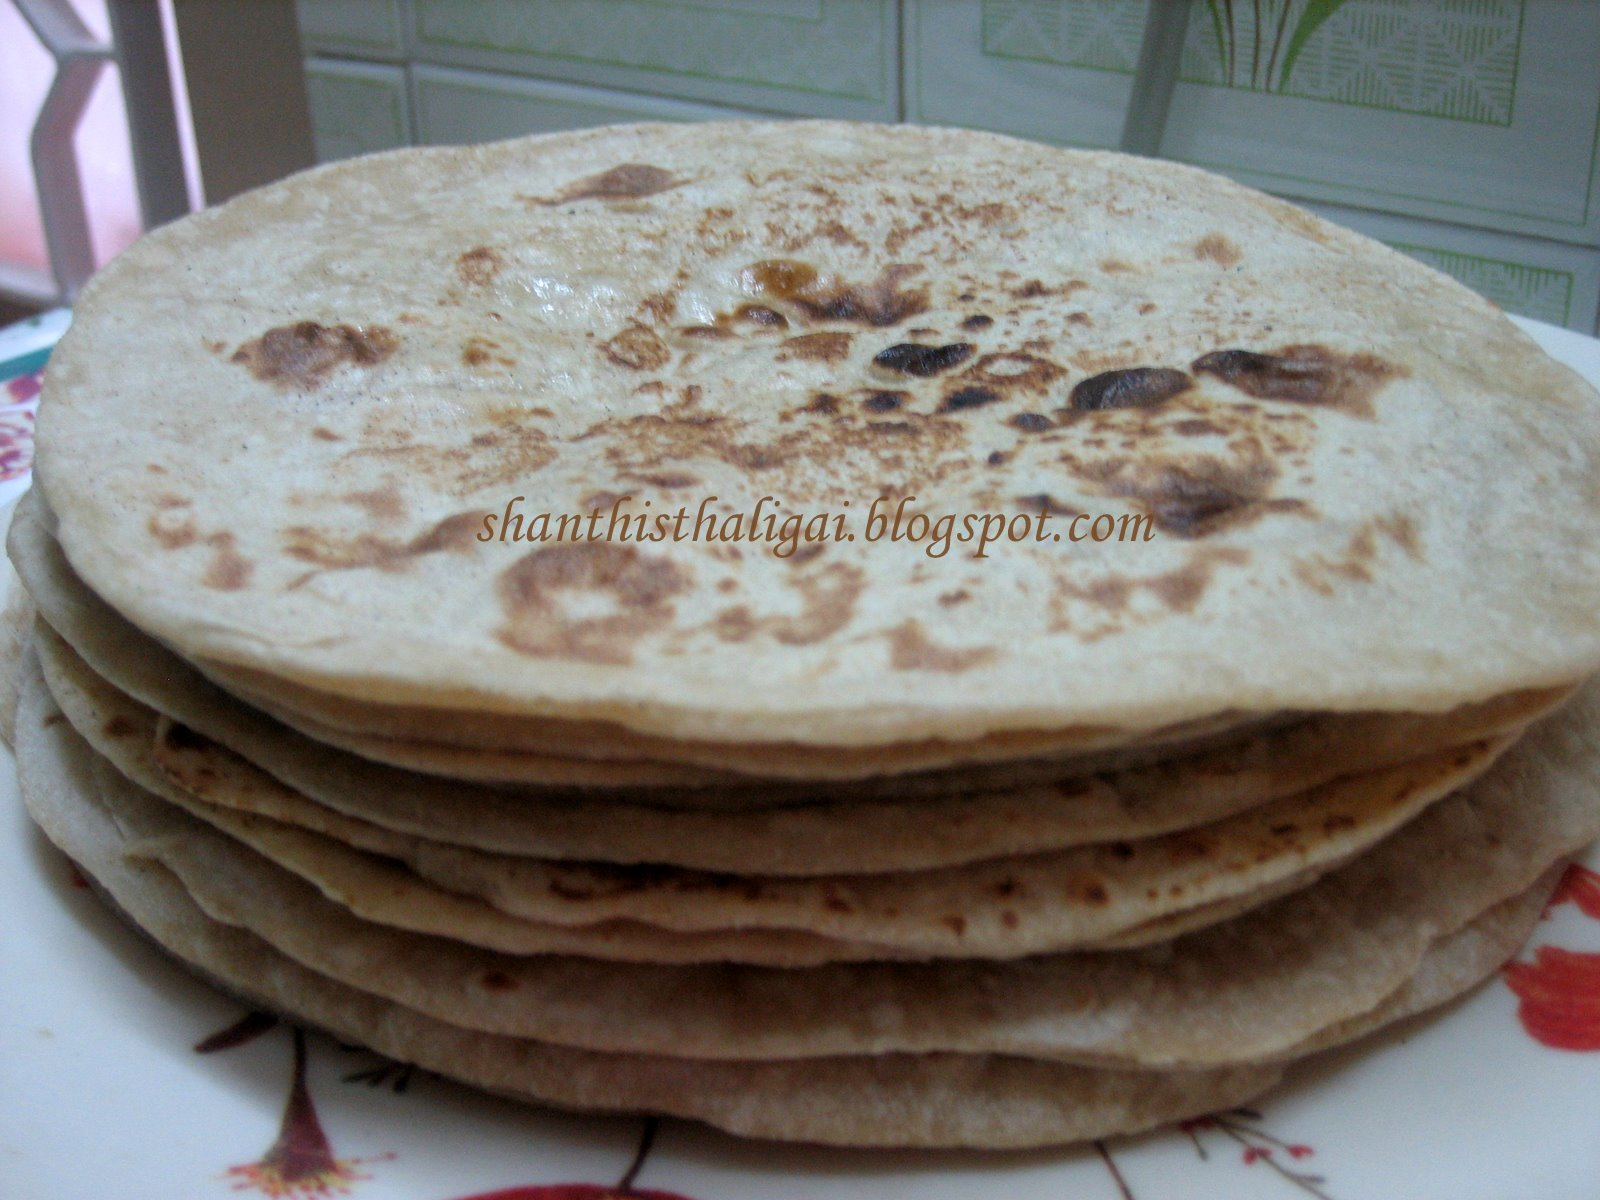 CHAPATHI, PHULKA,HOW TO MAKE PHULKA